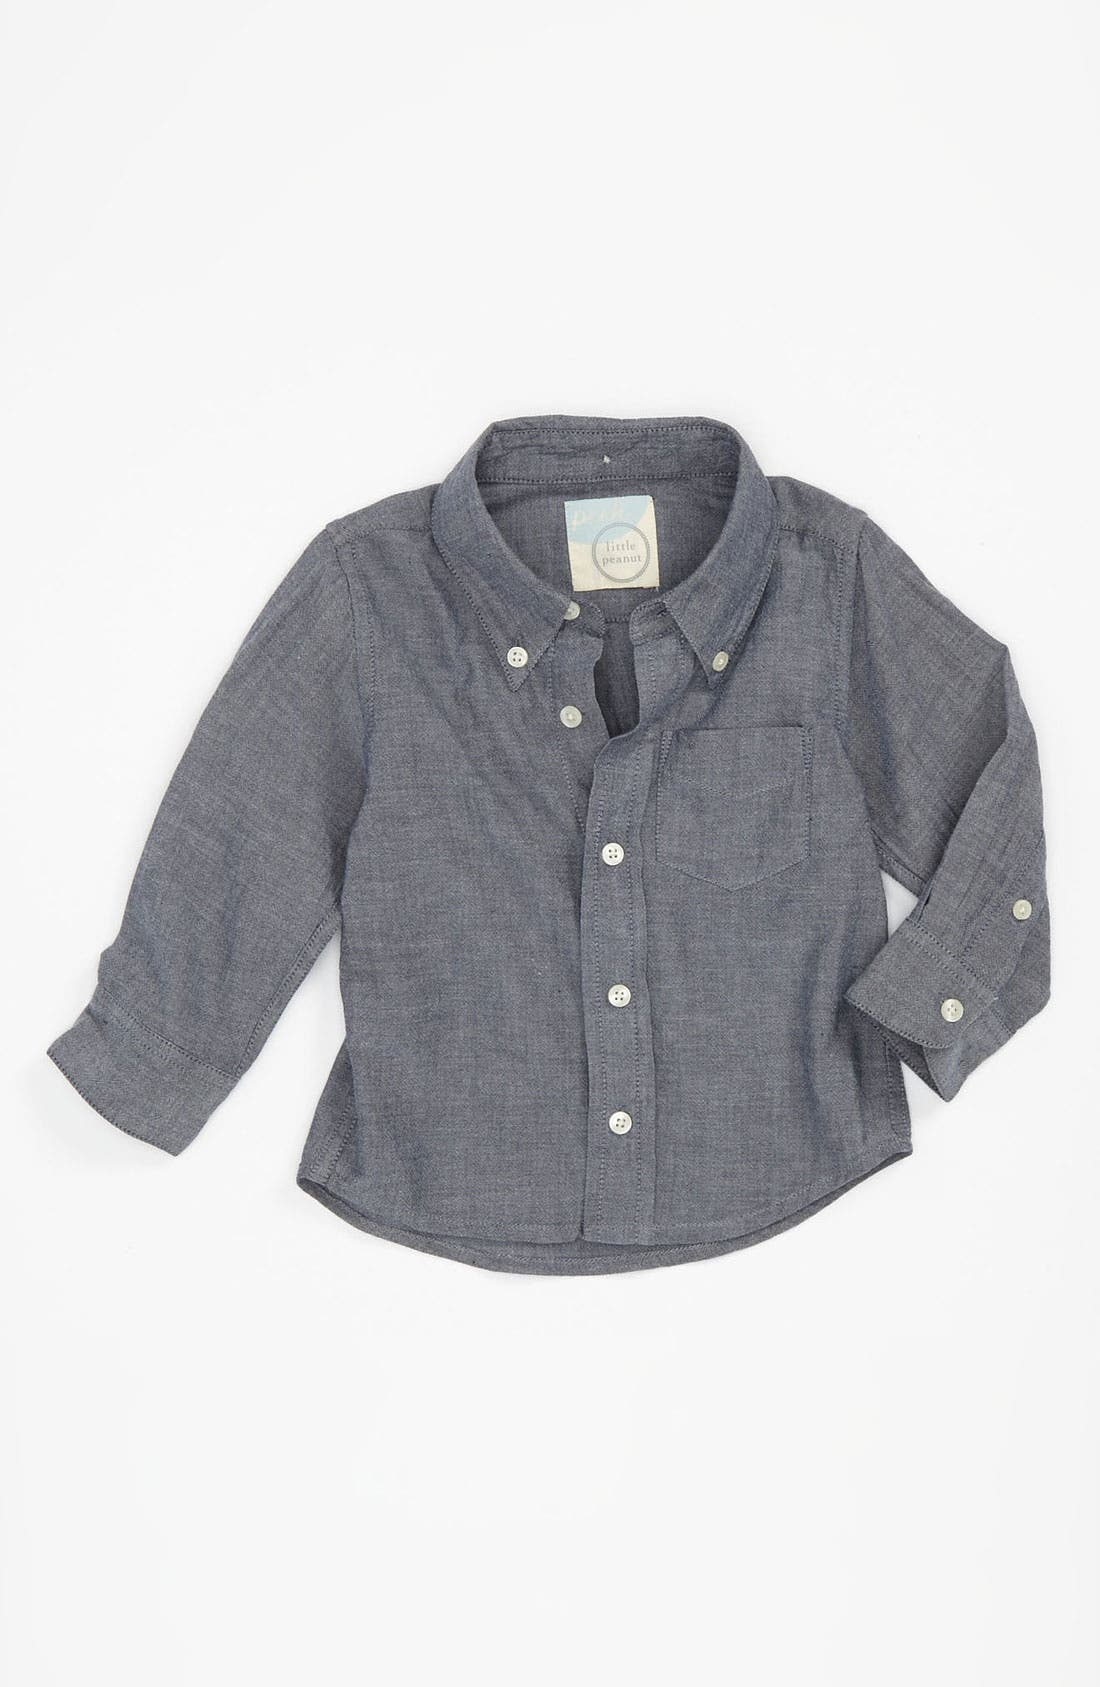 Main Image - Peek 'Clifton' Chambray Shirt (Infant)